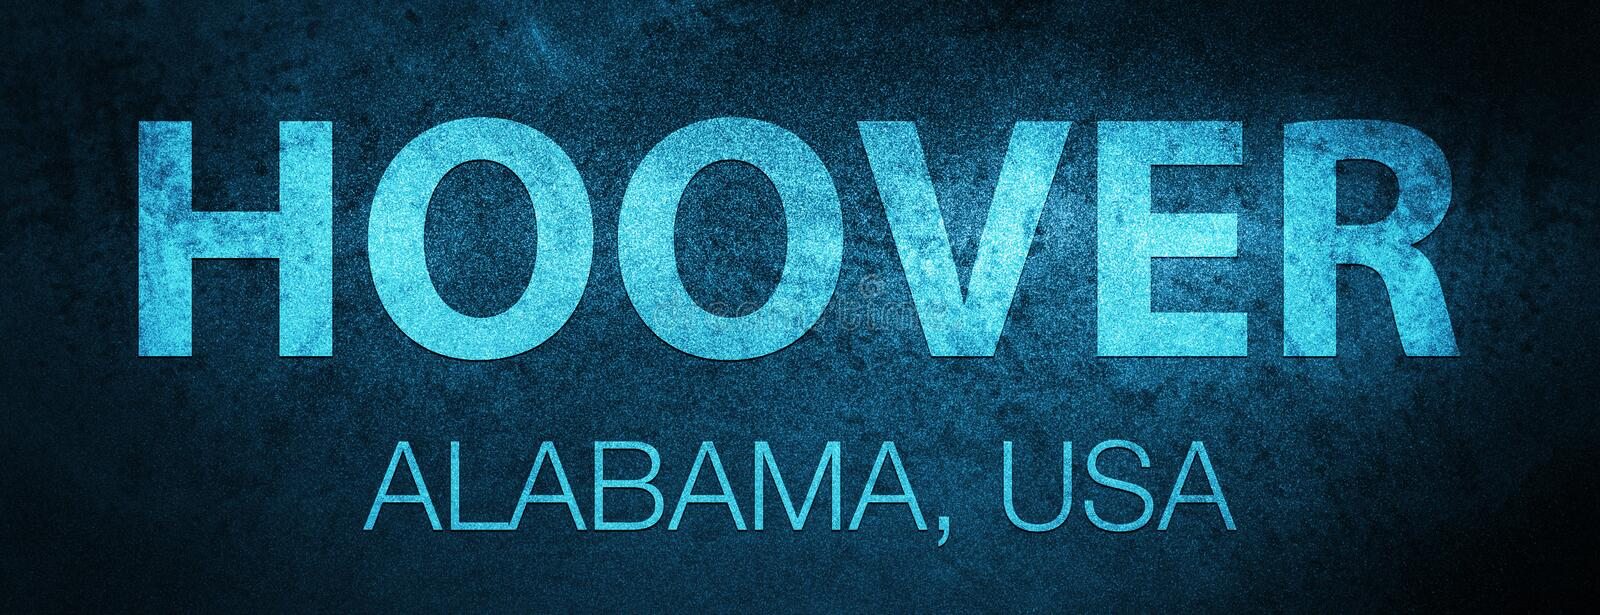 Hoover. Alabama. USA special blue banner background. Hoover. Alabama. USA isolated on special blue banner background abstract illustration royalty free illustration